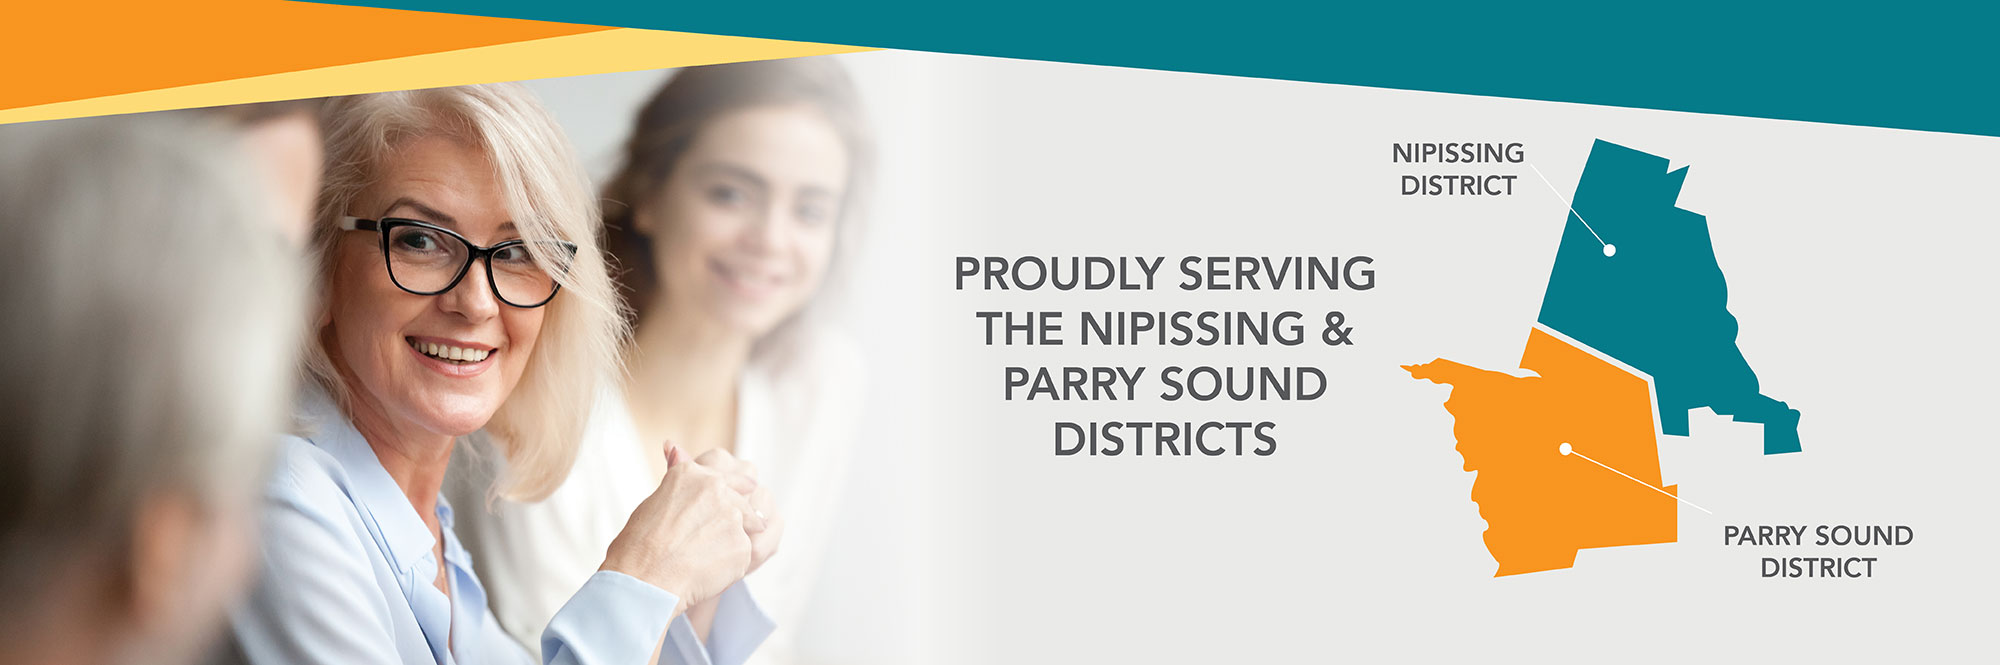 Proudly Serving Nipissing and Parry Sound Districts